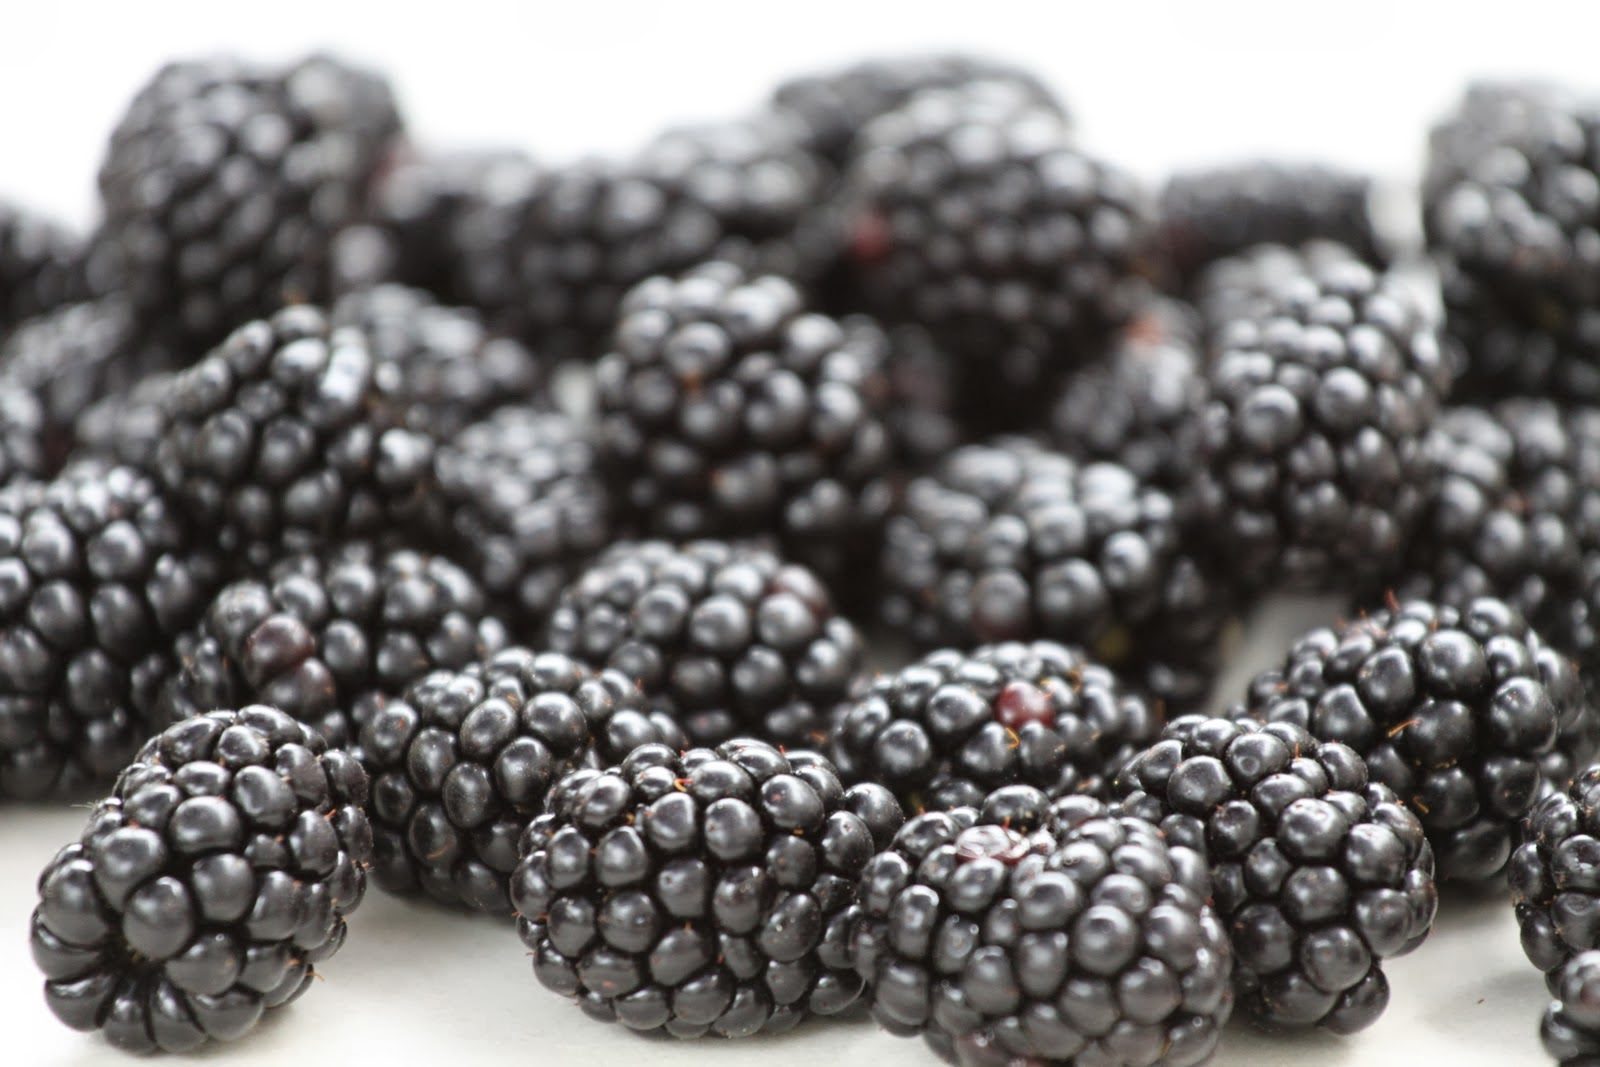 Blackberry fruit wallpaper - Hd And 3d Wallpapers Provide Awesome And Latest Collection Of High Definition Sharp Quality Wallpapers Pictures And Photos